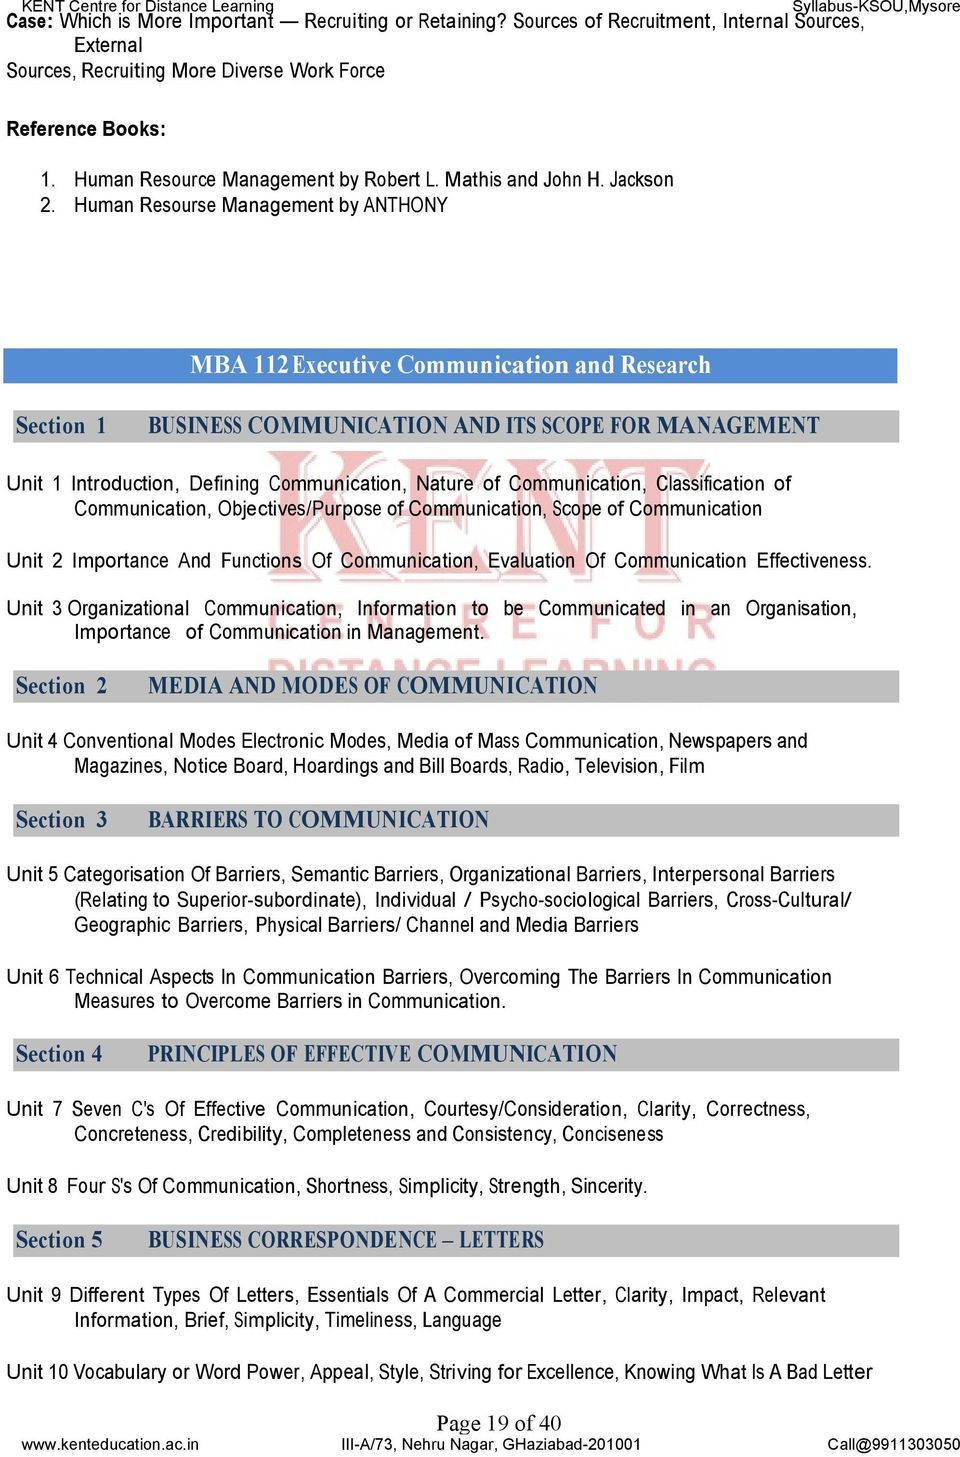 Human Resourse Management by ANTHONY MBA 112Executive Communication and Research BUSINESS COMMUNICATION AND ITS SCOPE FOR MANAGEMENT Unit 1 Introduction, Defining Communication, Nature of